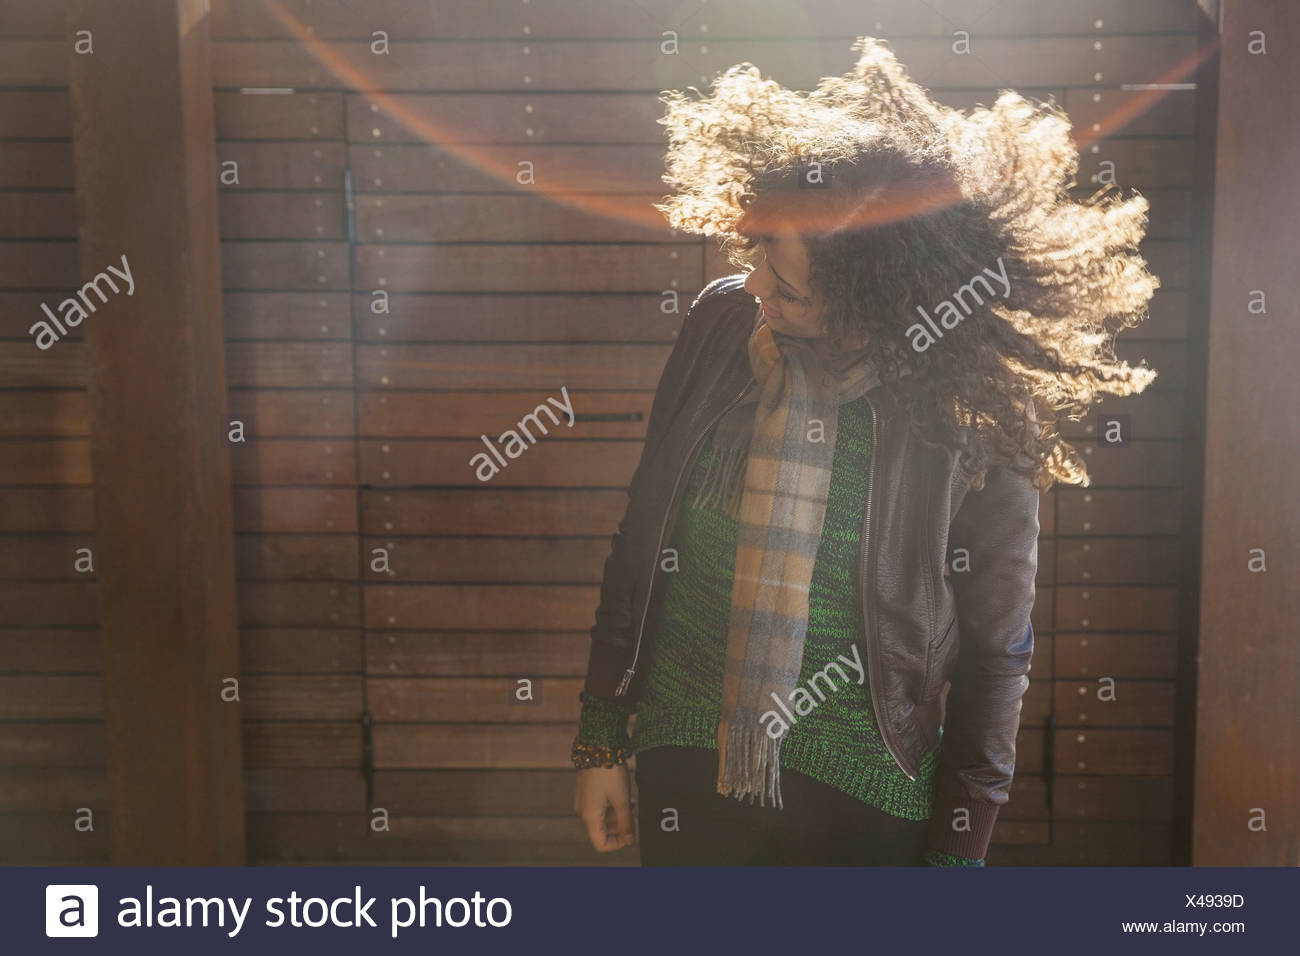 Woman standing outdoors shaking her hair - Stock Image